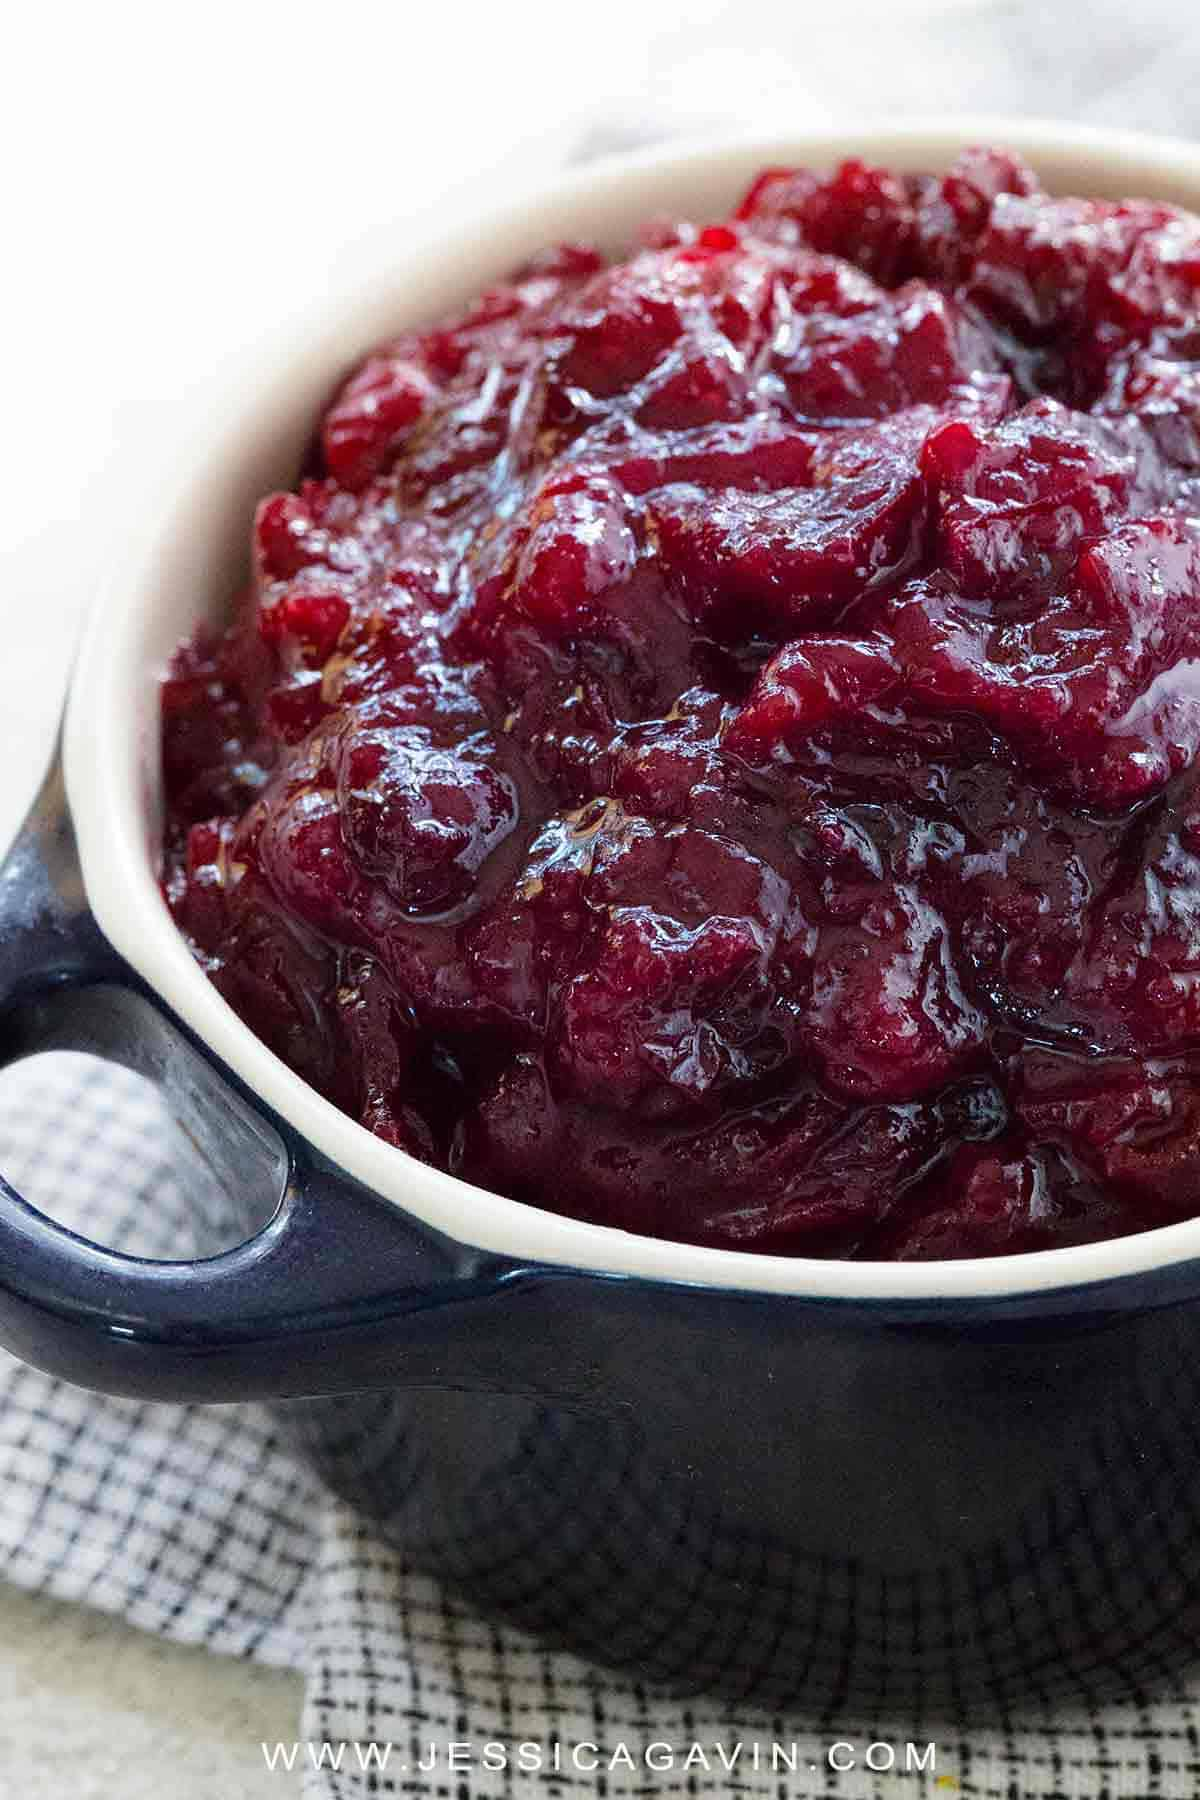 A Thanksgiving holiday feast is not complete unless there is homemade cranberry sauce on the table! Make this easy four-ingredient condiment ready in under 30 minutes. #thanksgiving #cranberrysauce #cooking #cranberry #vegan